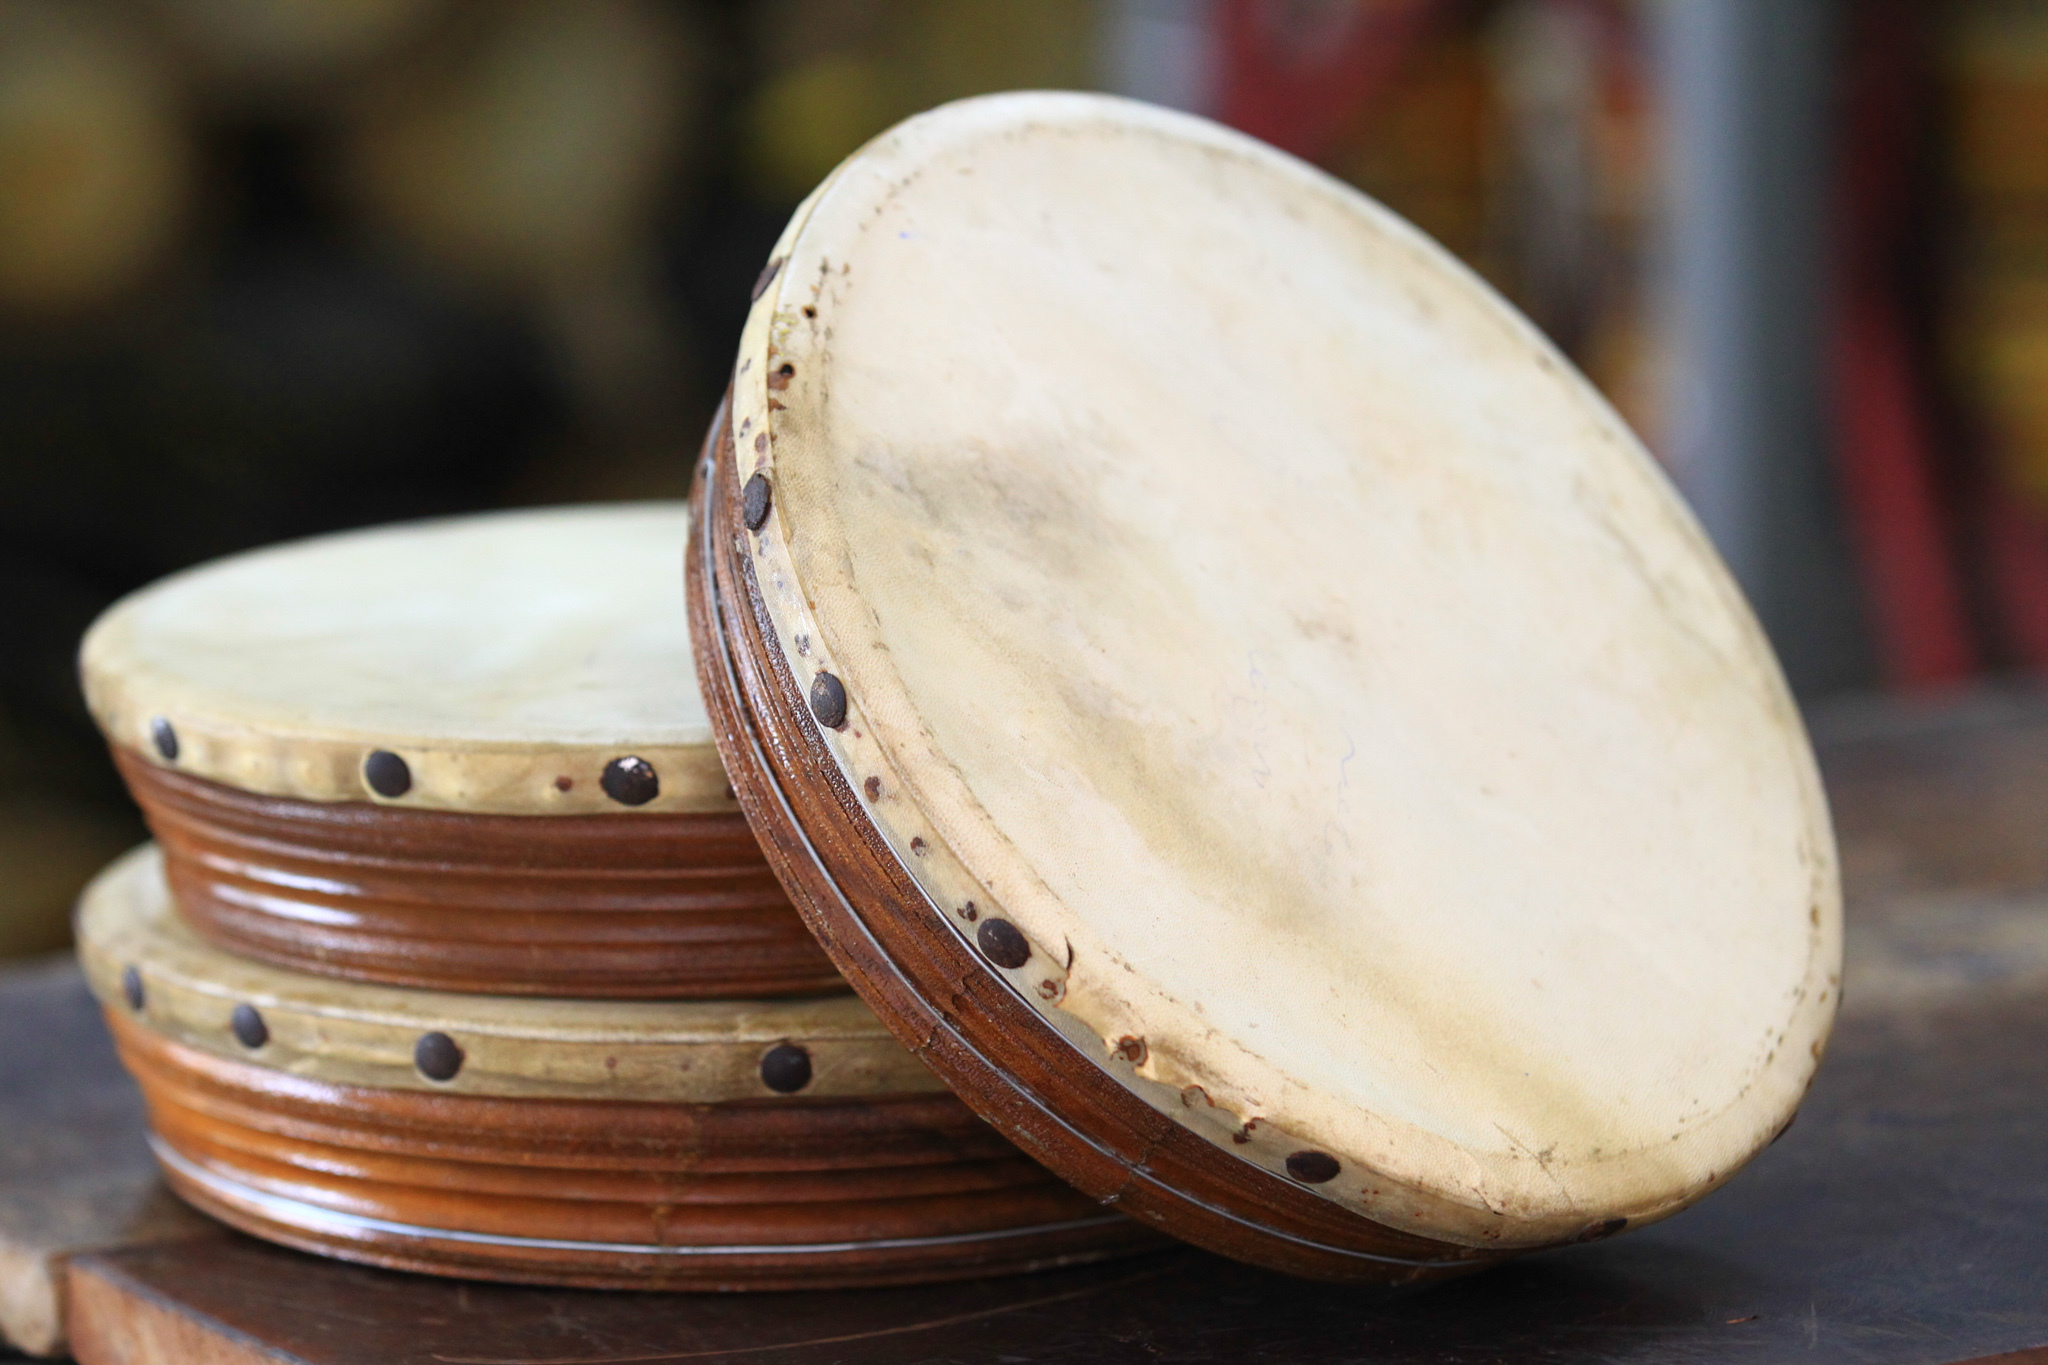 Traditional Sri Lankan musical instruments